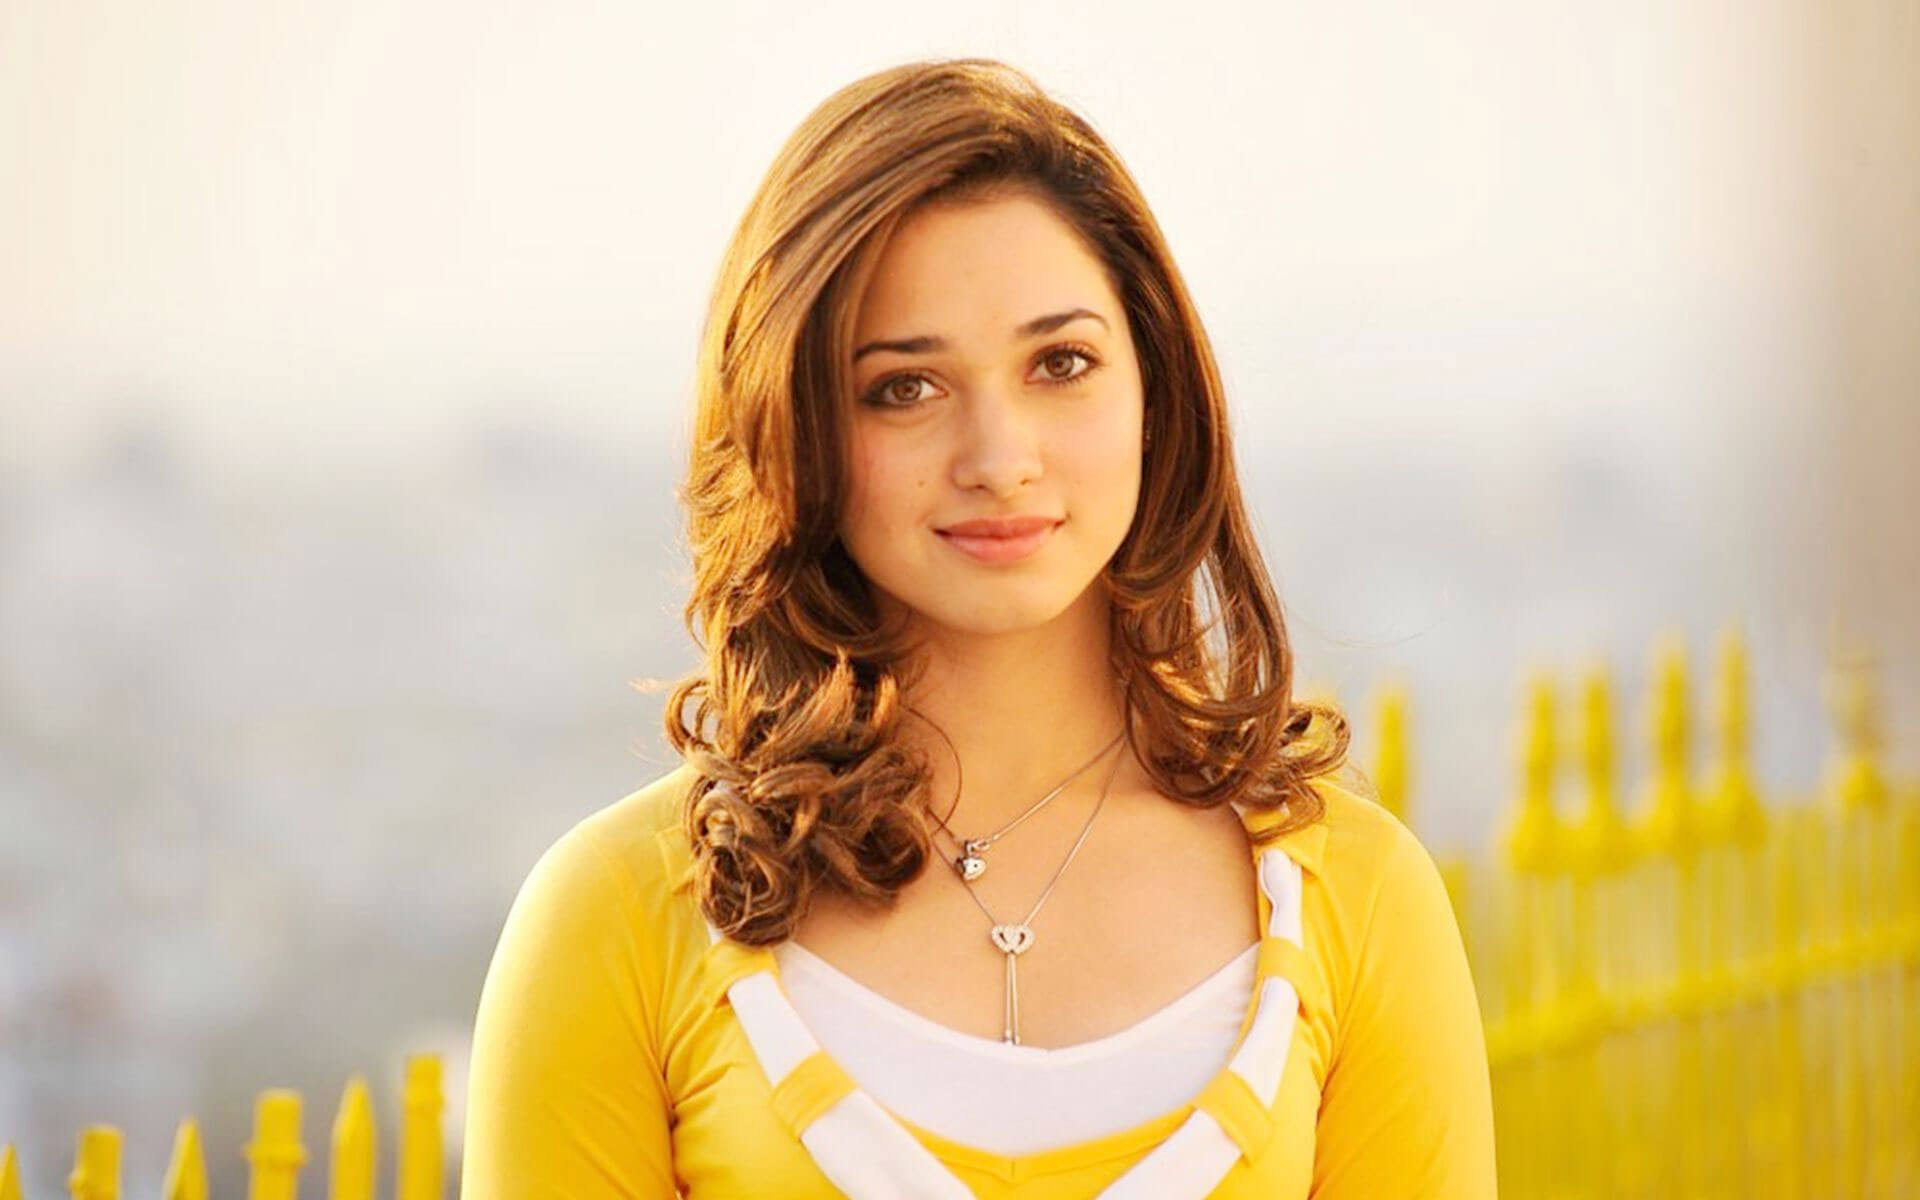 Tamannaah Bhatia Photos(images), Height, Biography, Movies, Date Of Birth, House, Details, Marriage, Boyfriend, Net Worth, Education, Instagram, Facebook, Twitter, Wiki, Imdb, Youtube (56)